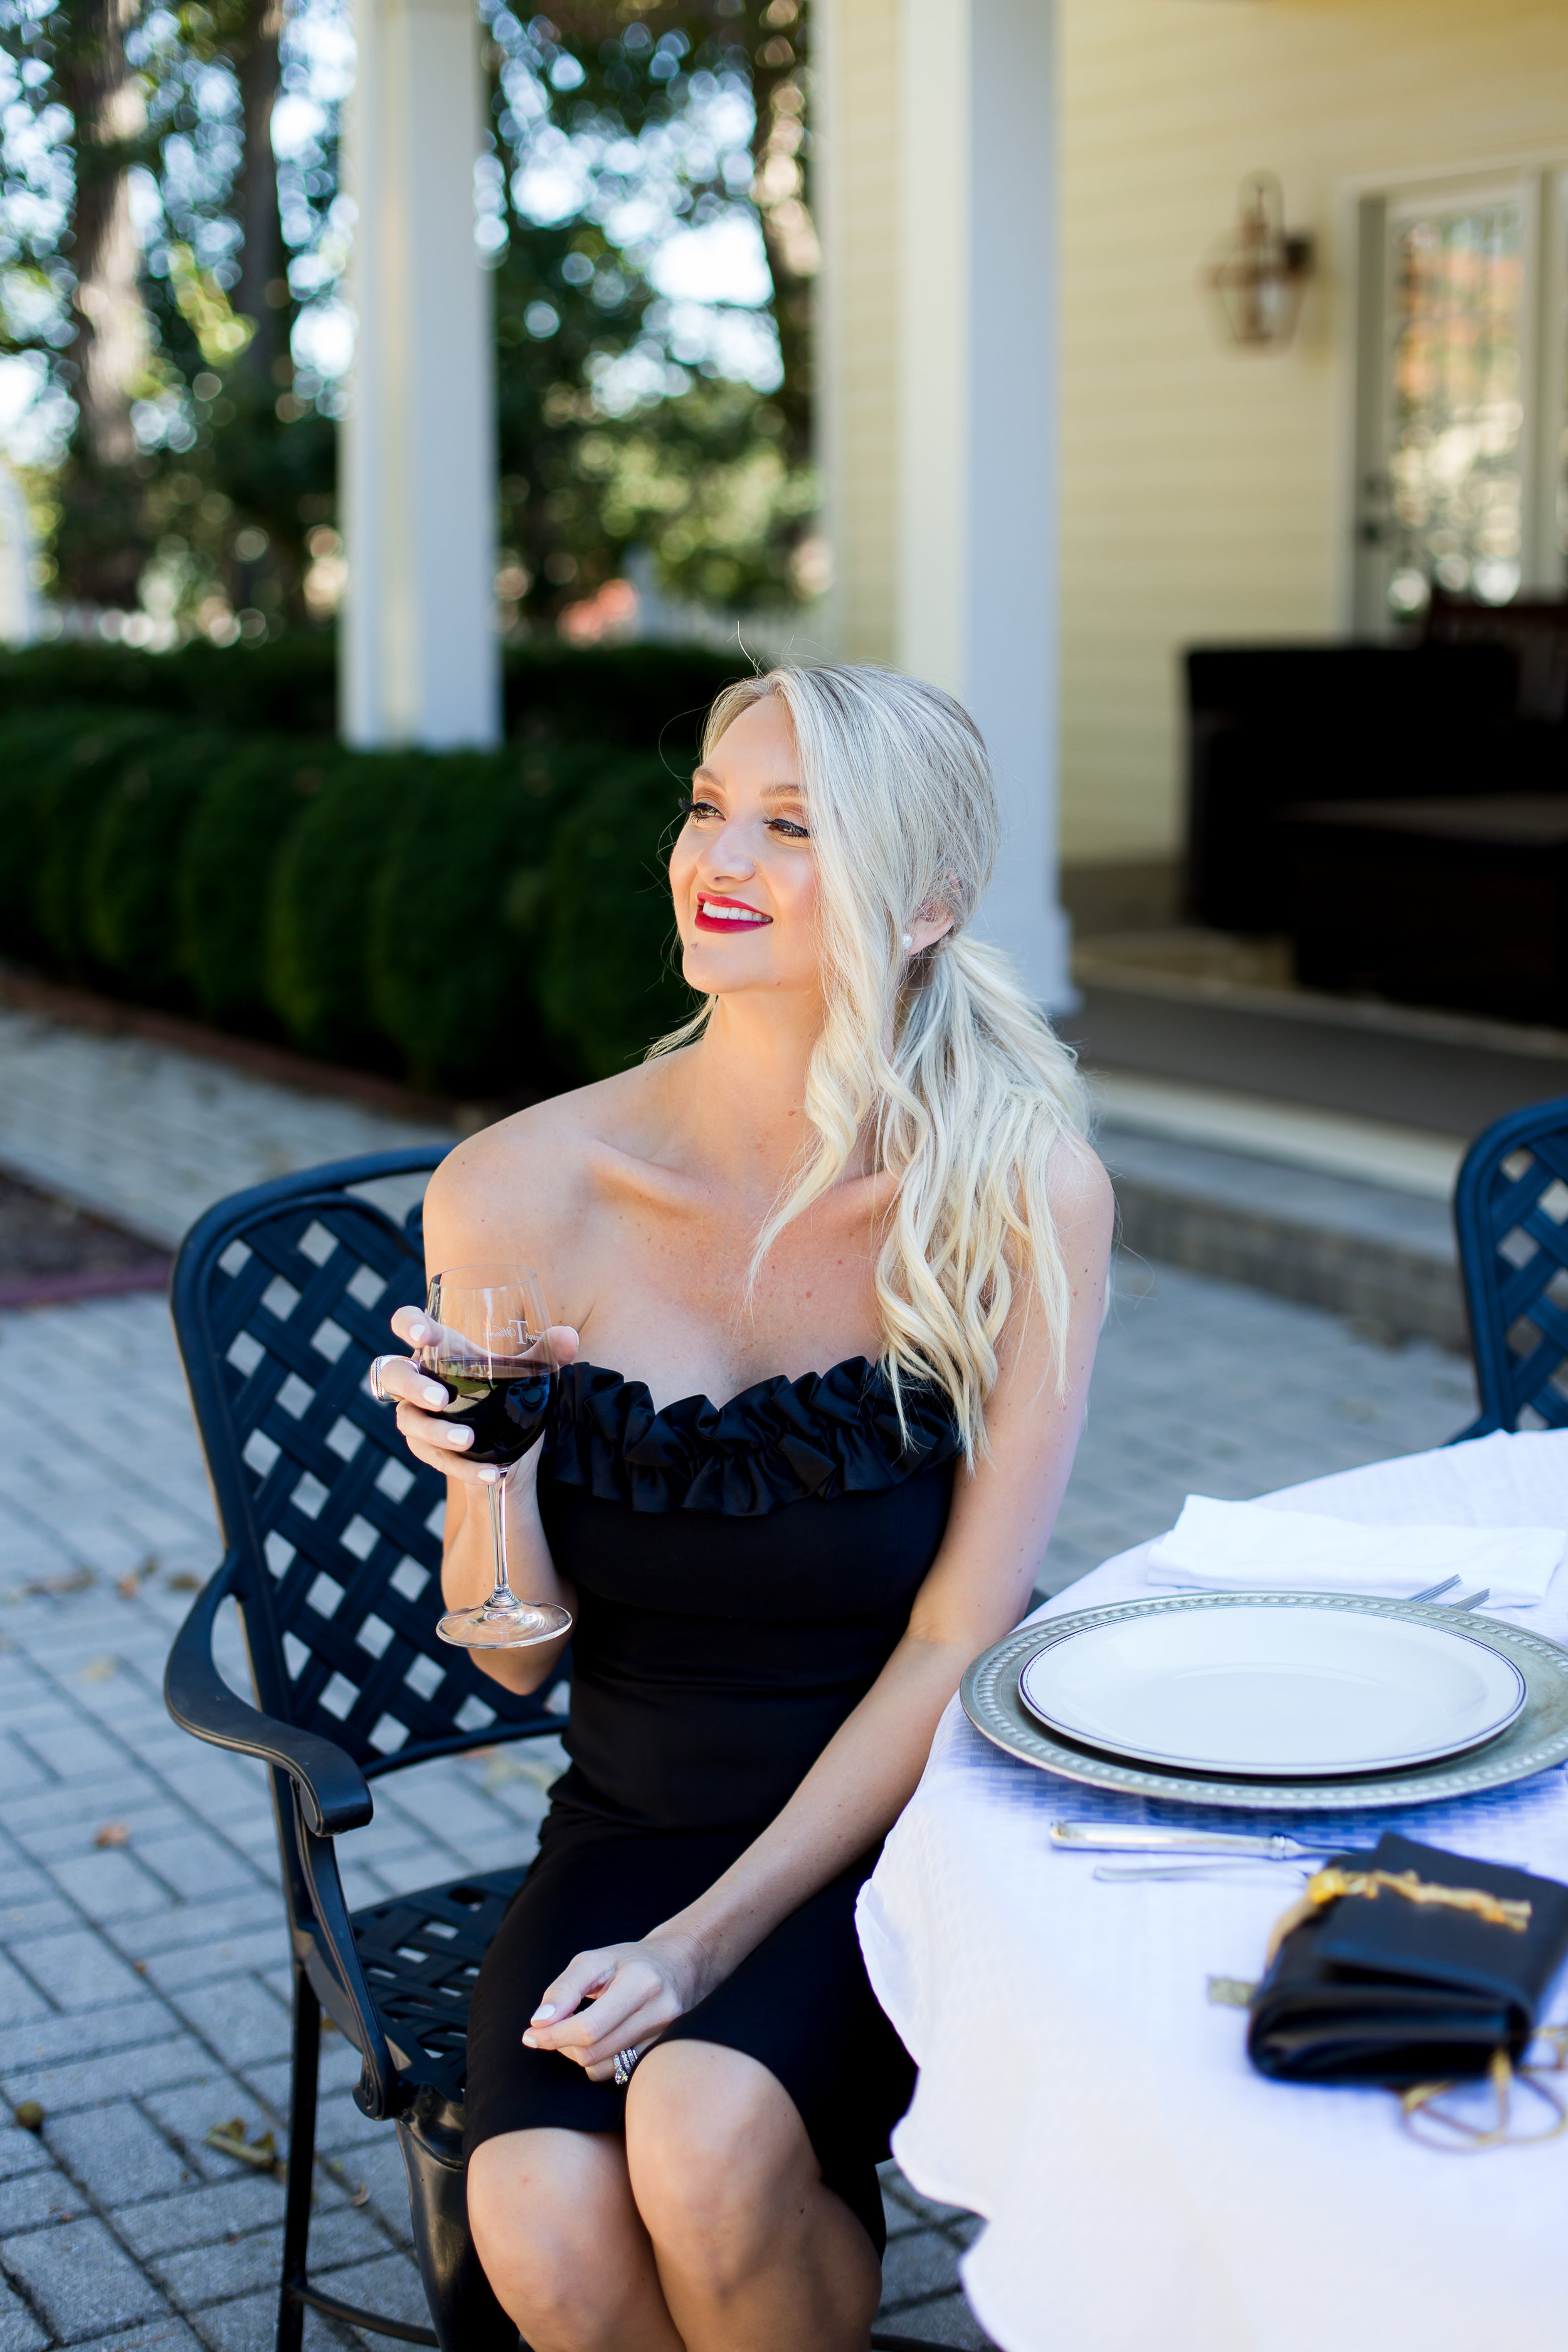 Holly, Make Today a Hollyday - What is your favorite style from the collection?My favorite dress is the Via!! I fell in love with the flirty neckline and classic silhouette!!Why do you love it? I love it because it makes me feel so feminine and flirty! When I put it on I immediately feel confident and classy!If you could wear it anywhere, where would it be? If I could wear this dress anywhere it would be to a fancy date night to my favorite restaurant with my husband. I am turning 30 this year in December and think it would be the perfect piece to wear out with a faux fur stole.